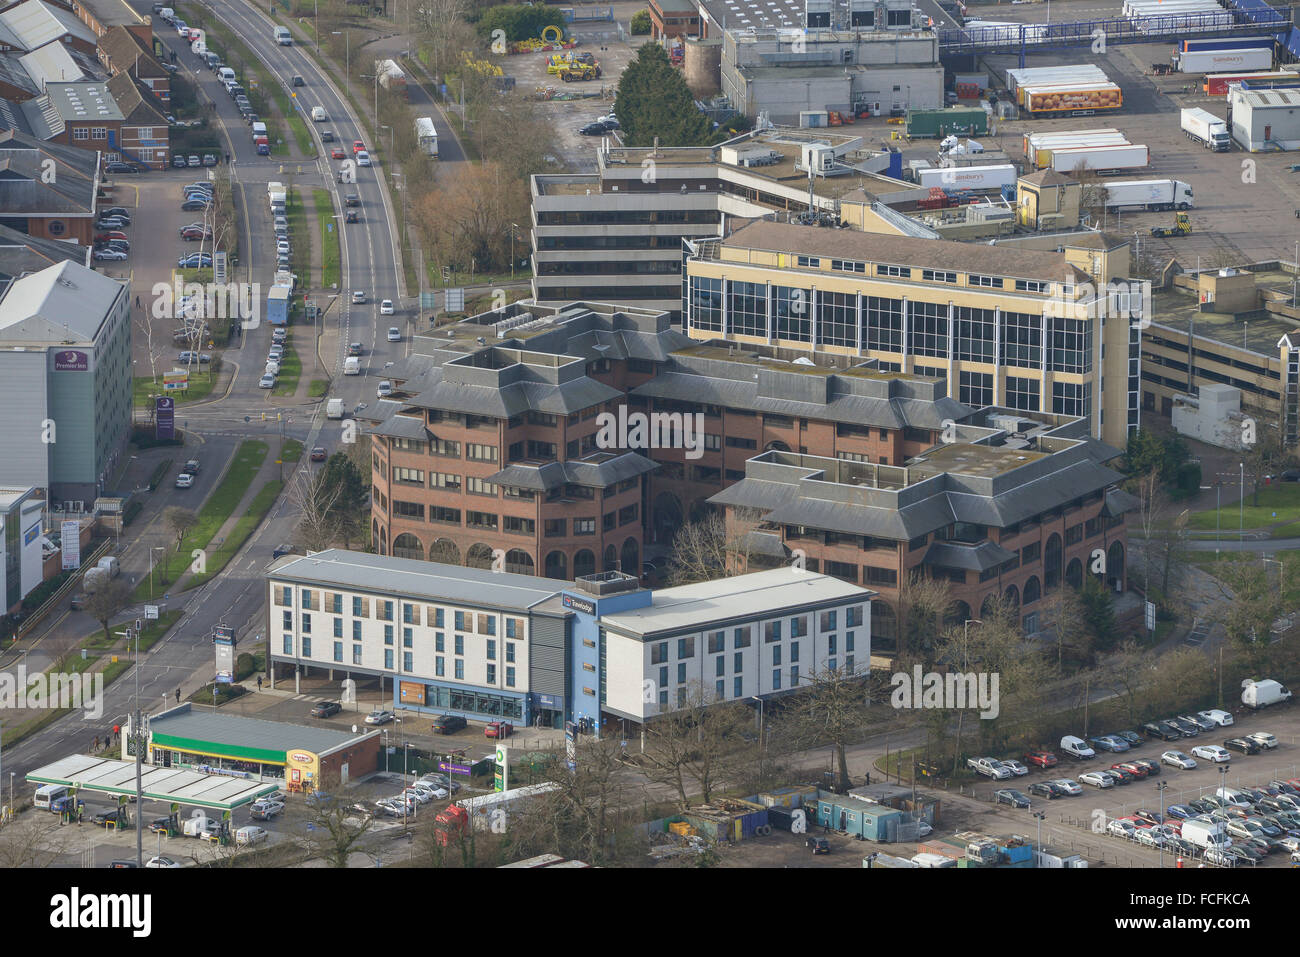 A low-angled aerial view of industrial units and offices in Borehamwood, Herts - Stock Image